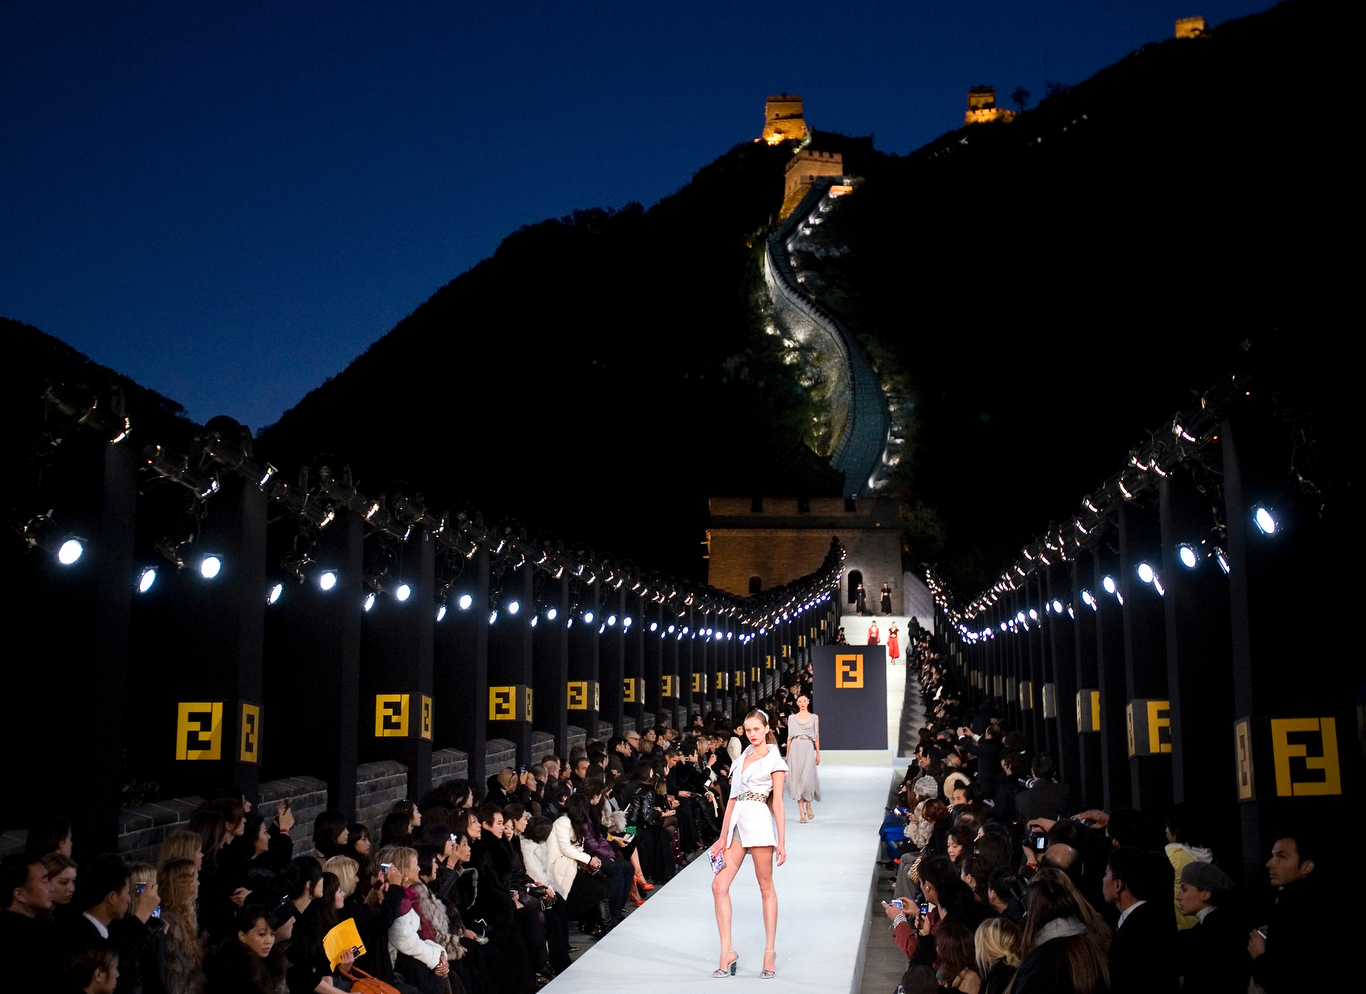 Models display the creation of Fendi Spring and Summer 2008 collection at the Great Wall of China transform to a catwalk stage during a fashion show in Beijing, ChinaFendi Fashion Show, Beijing, China - 19 Oct 2007